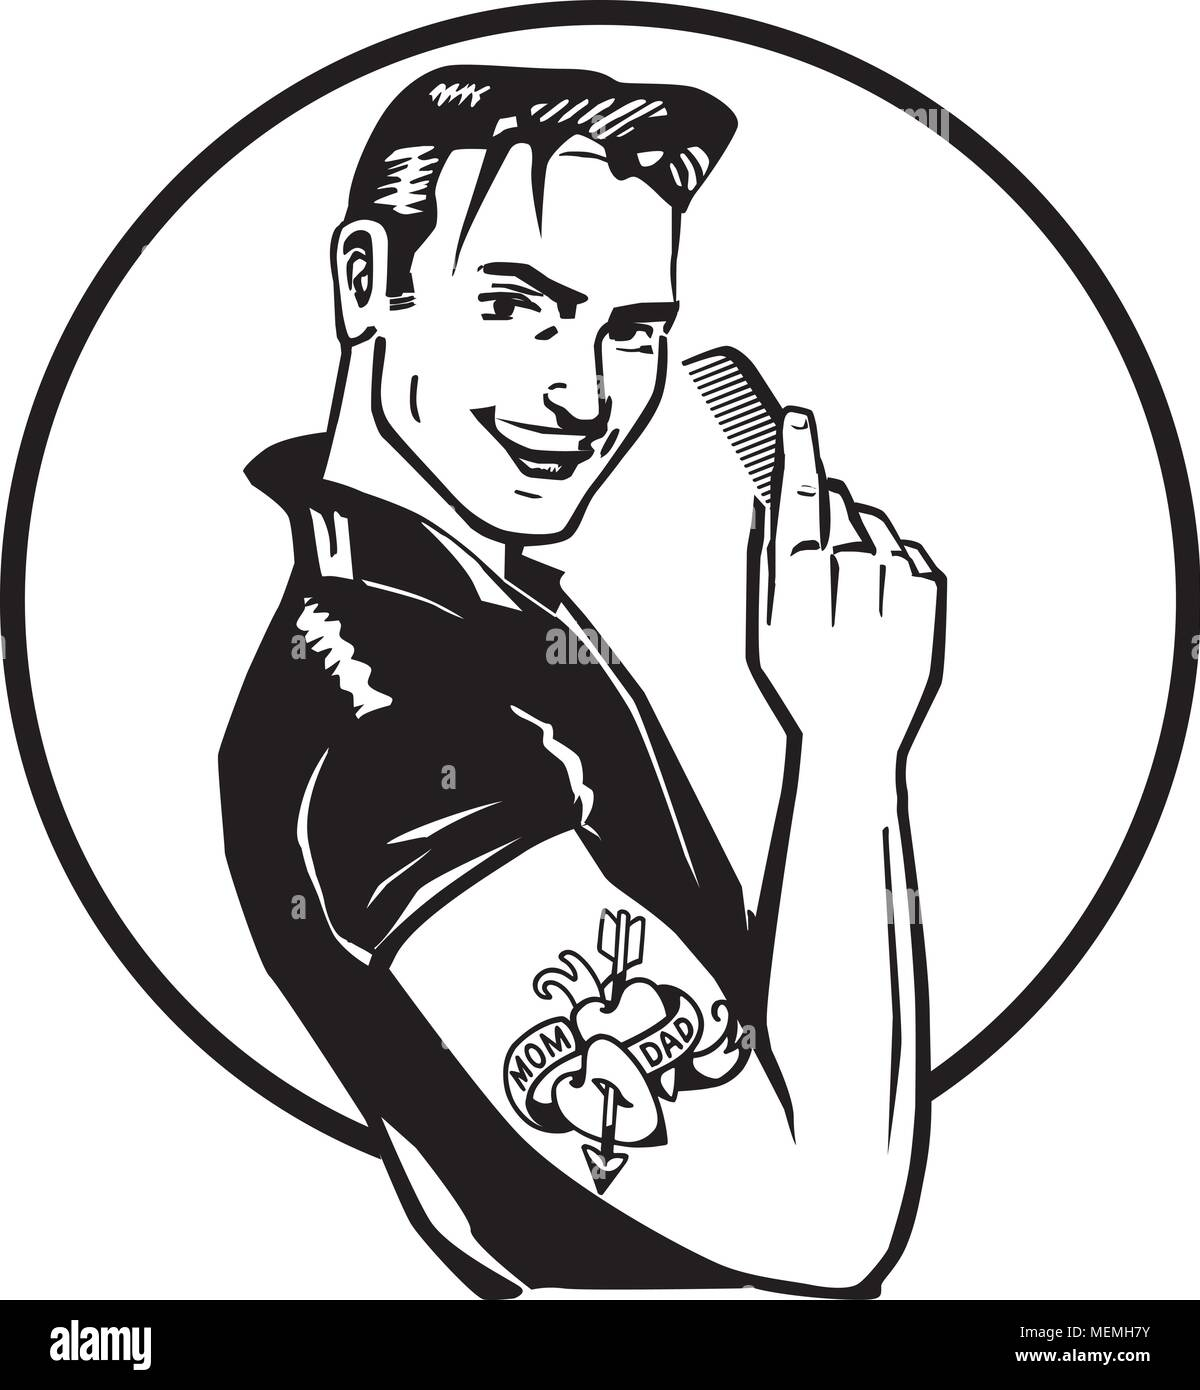 Fifties Greaser - Retro Clipart Illustration - Stock Image